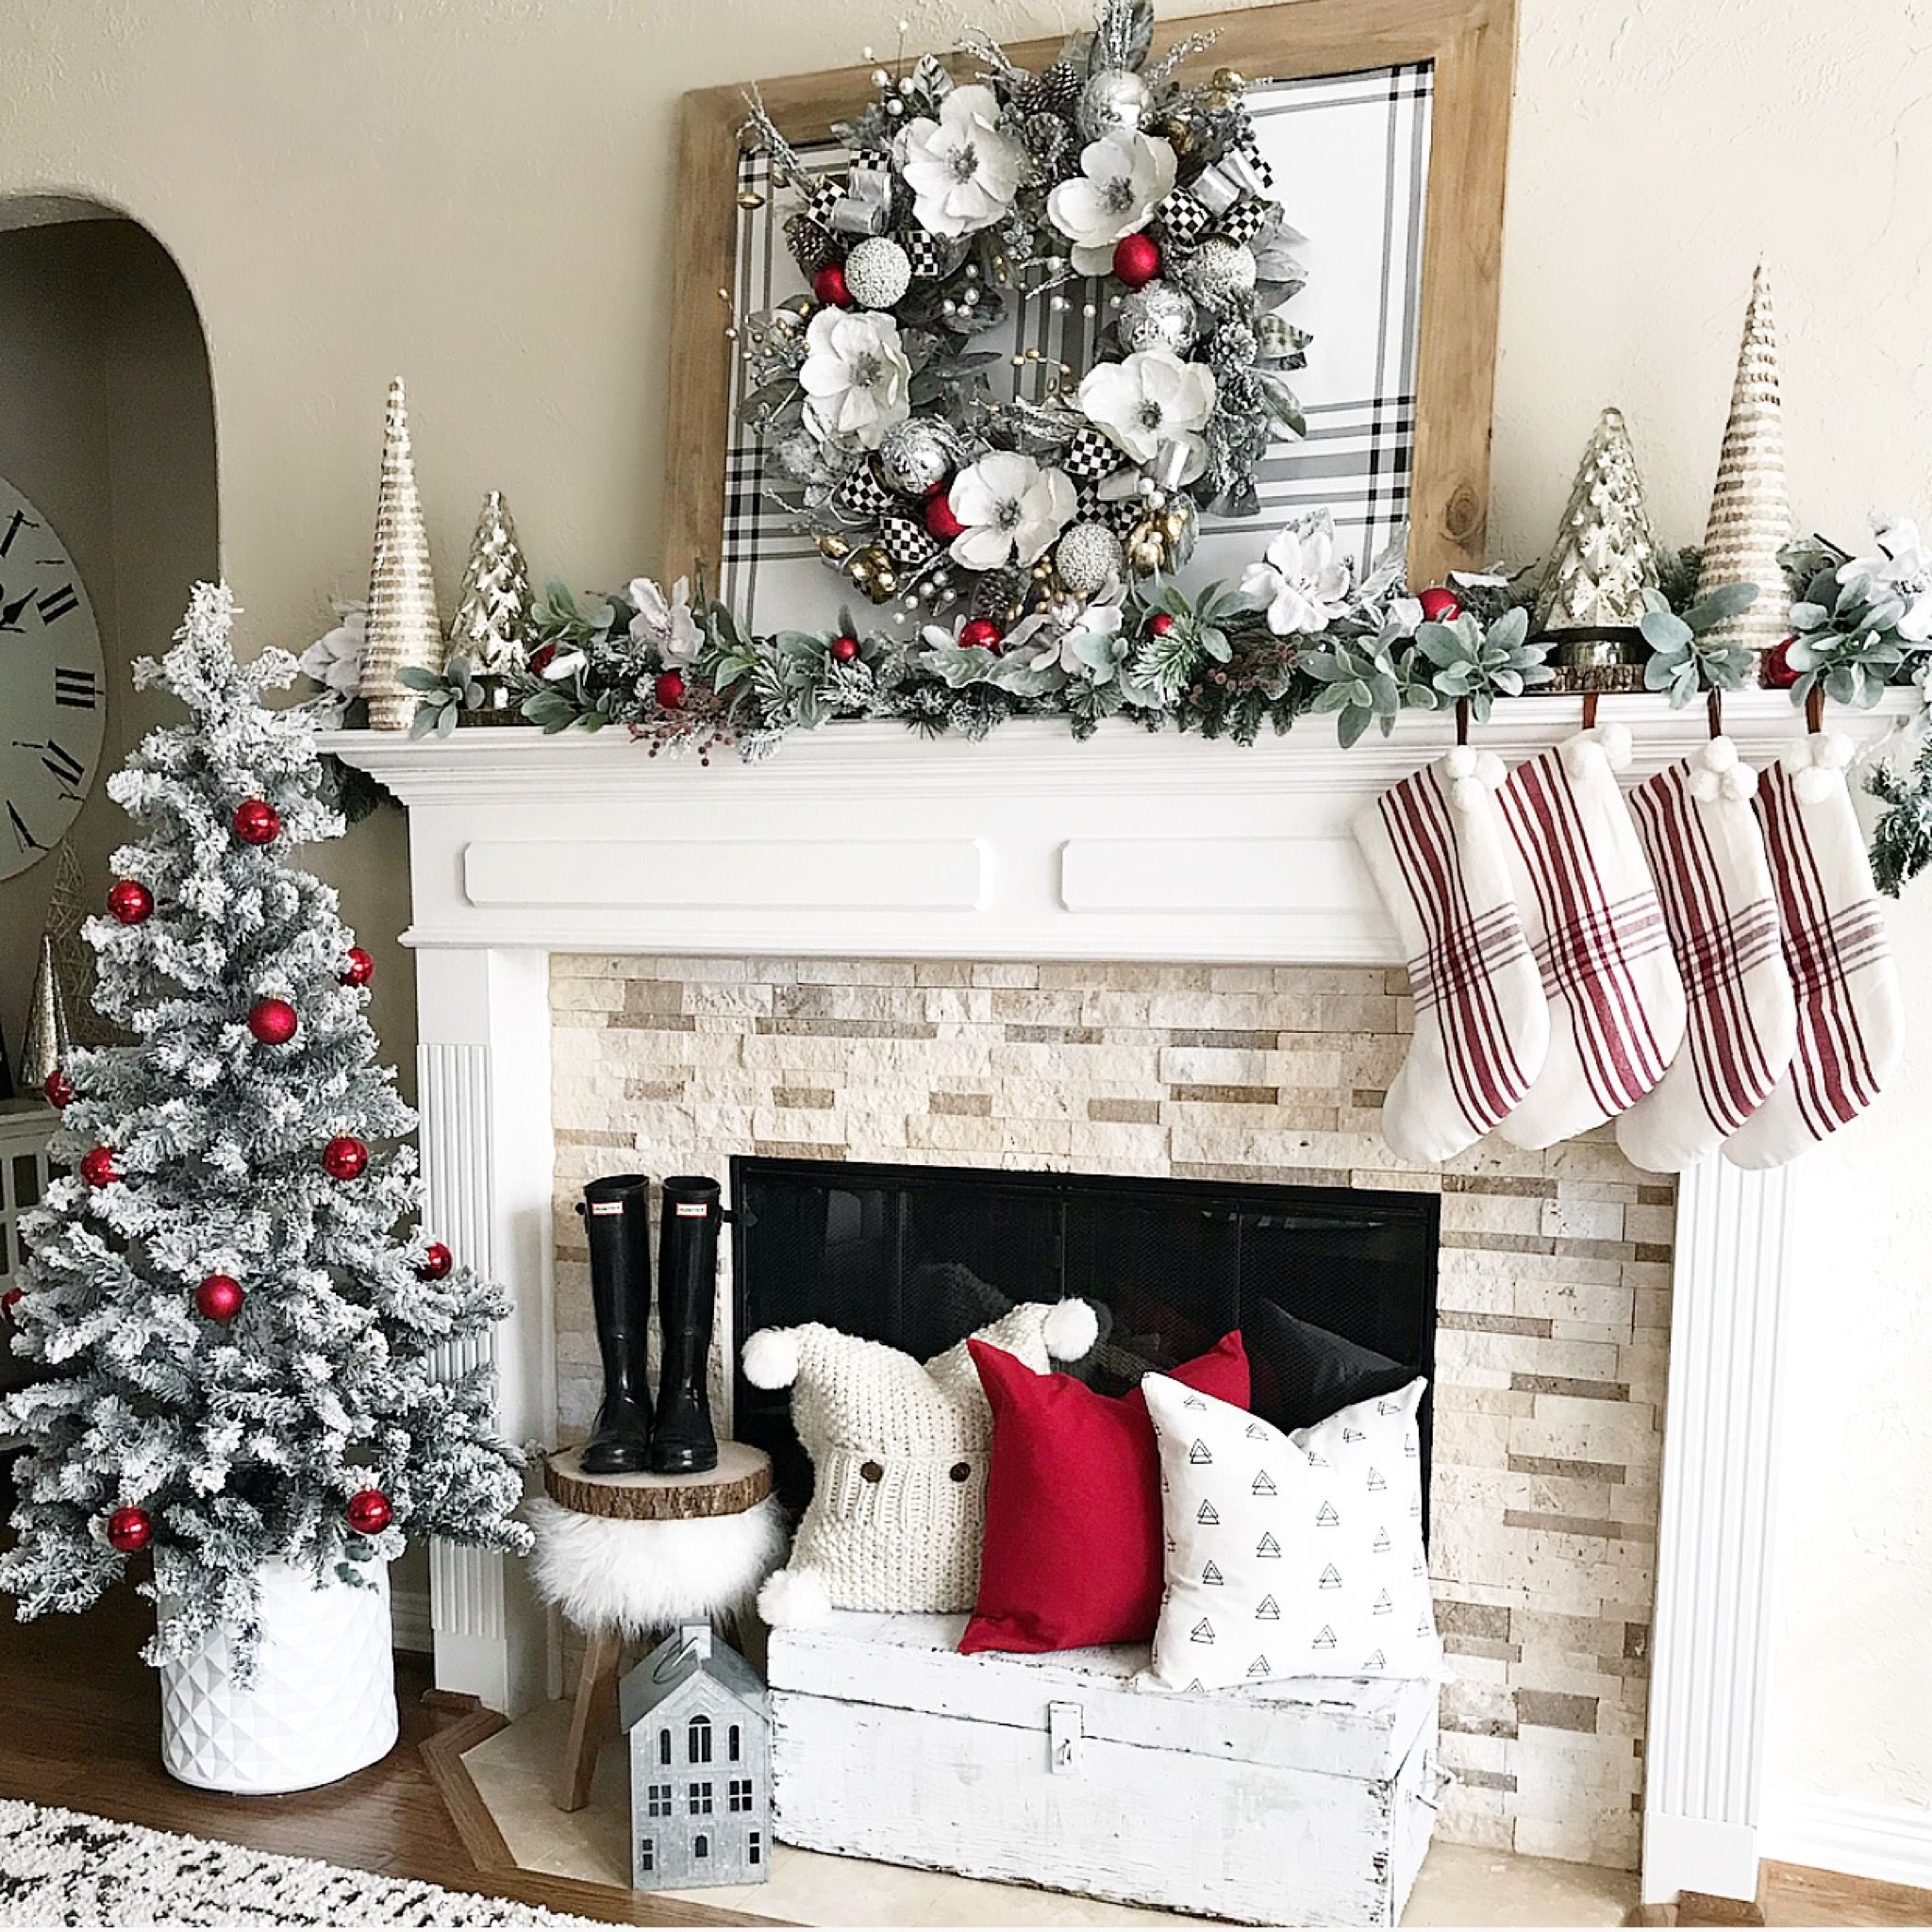 20+ Festive Christmas Mantel Ideas - How to Style a Holiday ...